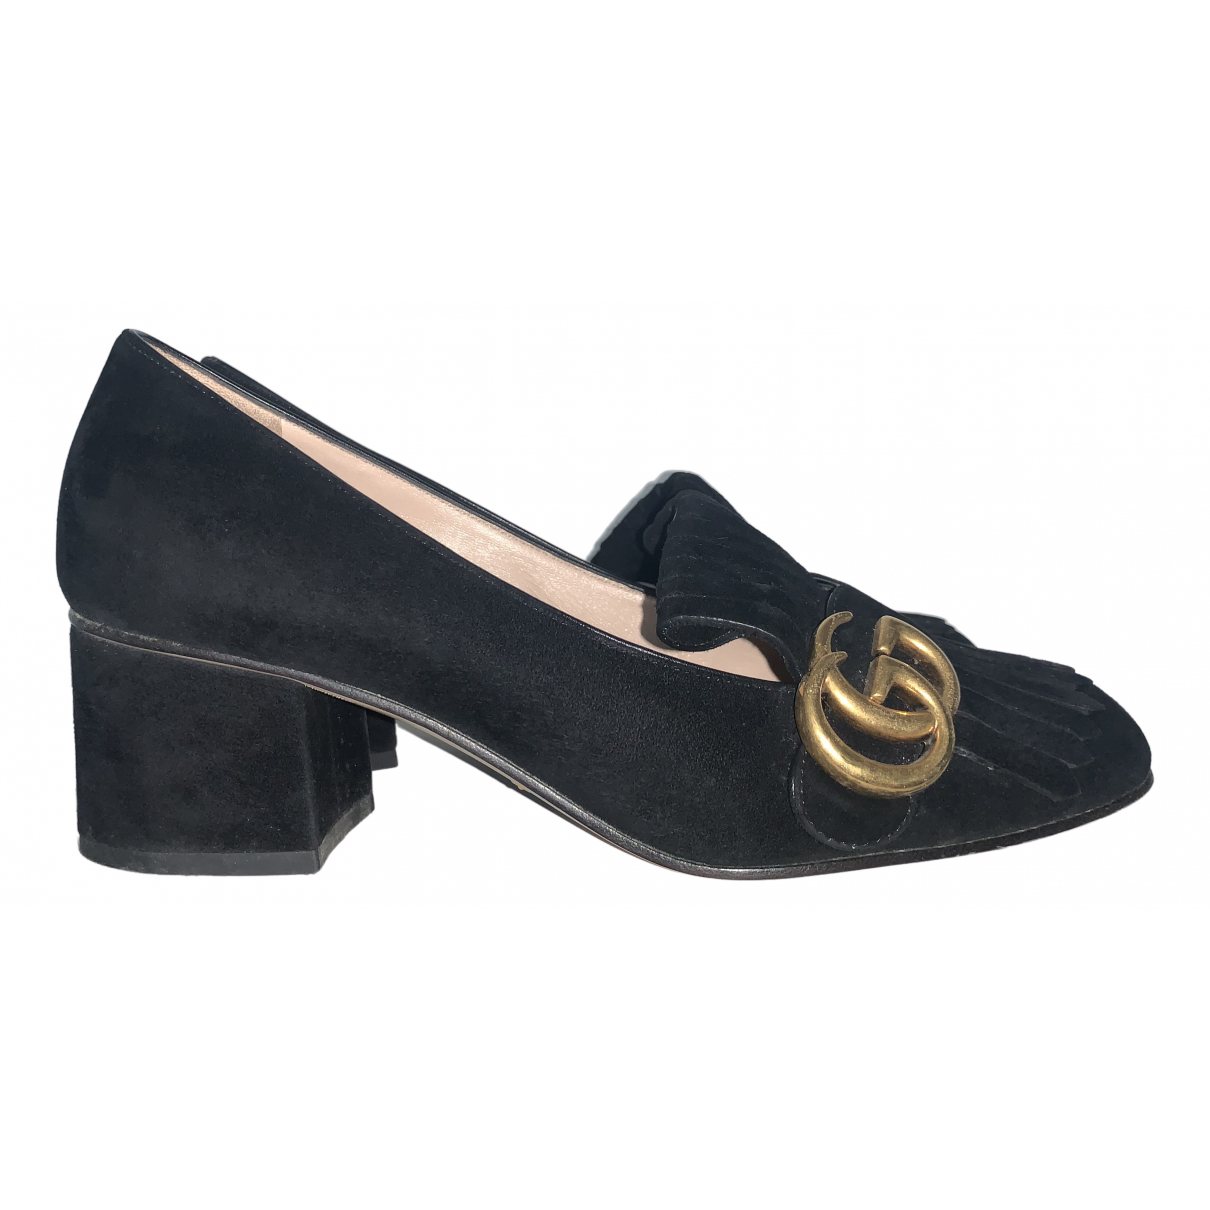 Gucci Marmont Black Suede Flats for Women 37 IT